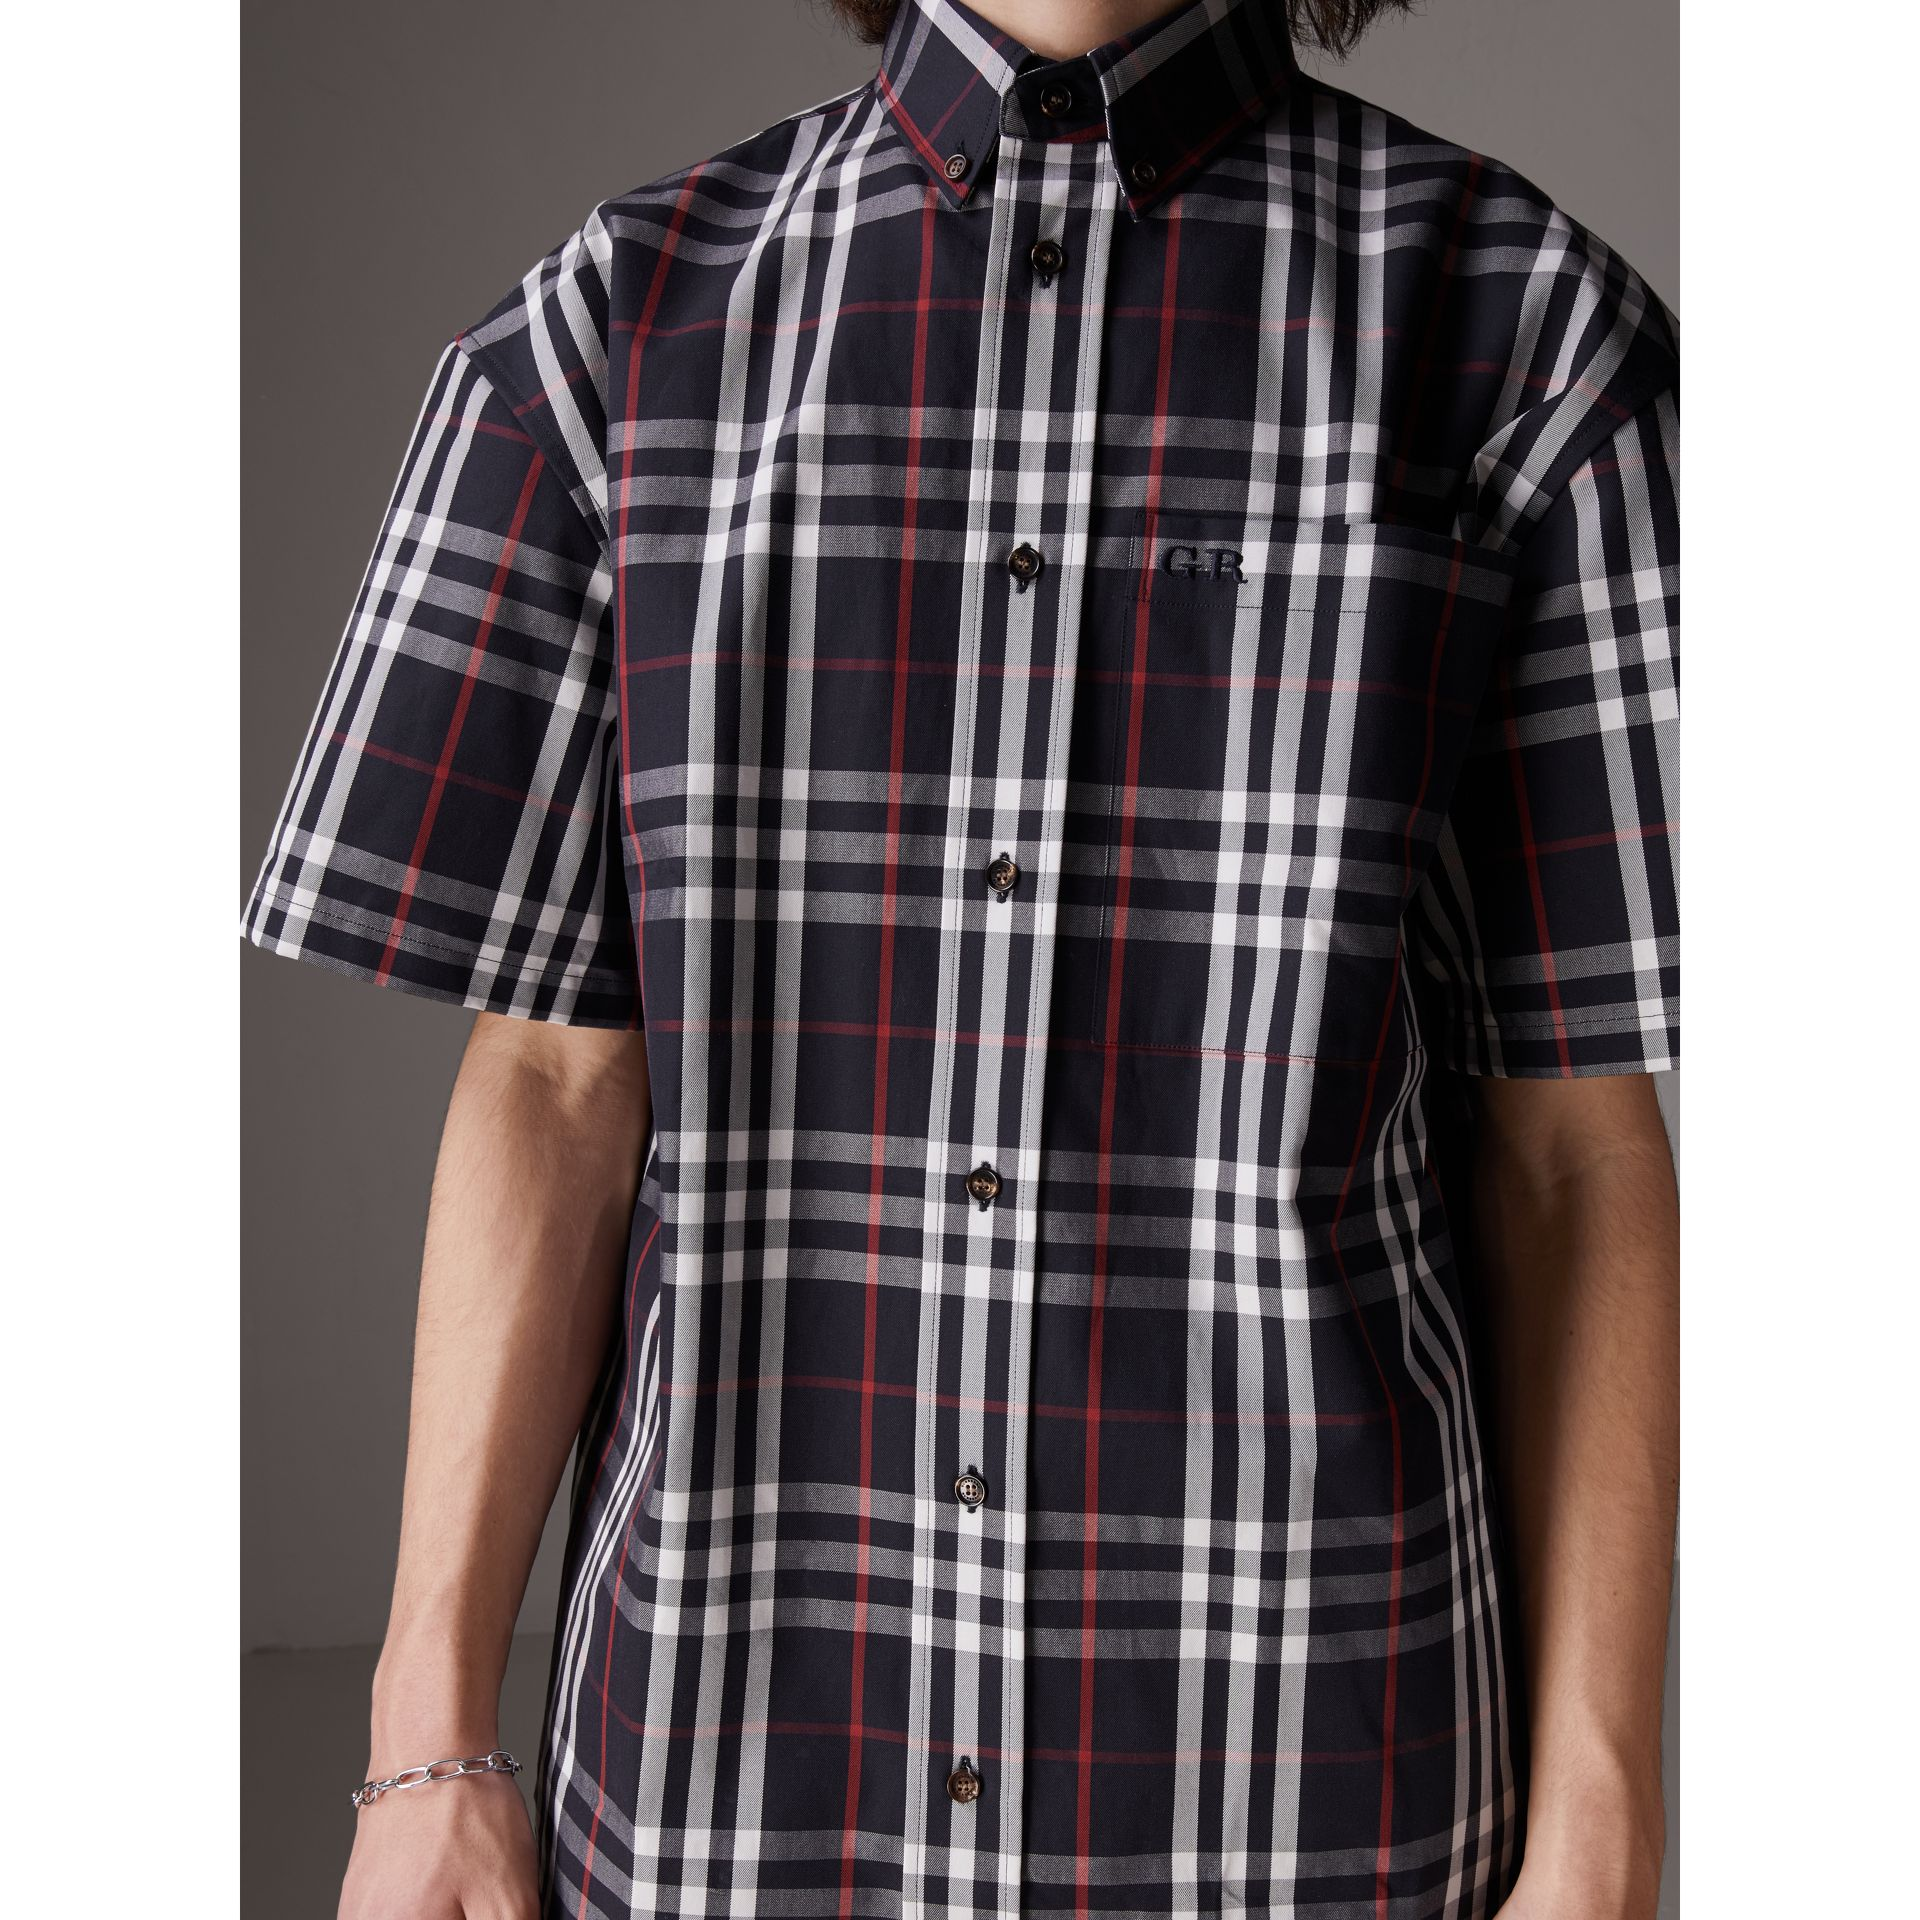 Gosha x Burberry Short-sleeve Check Shirt in Navy - Men | Burberry United Kingdom - gallery image 1